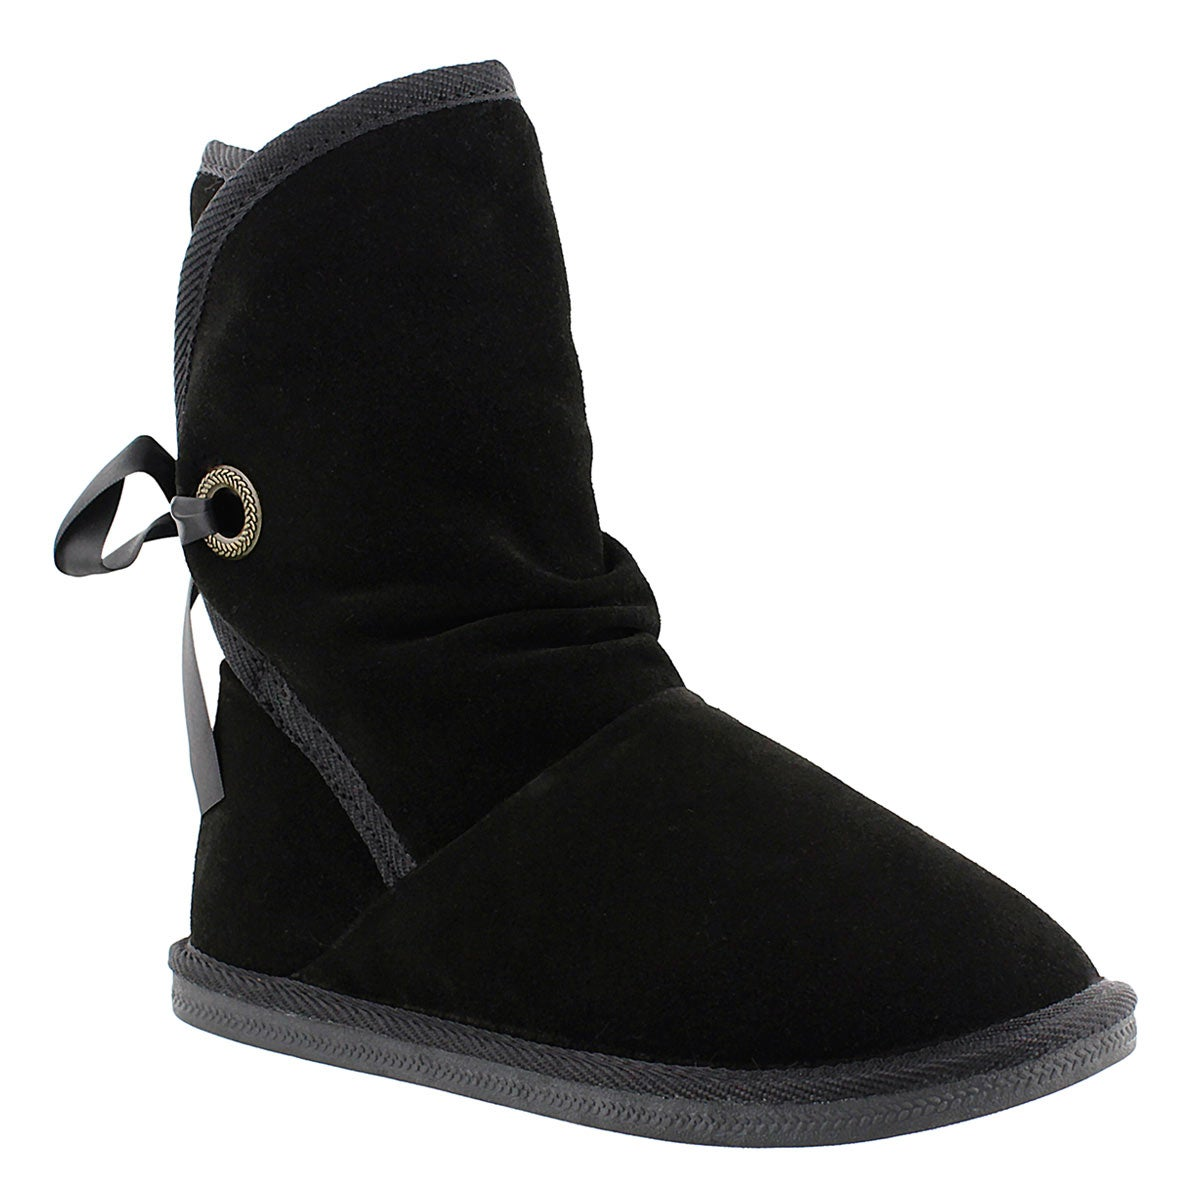 Lds Ribbon 2 blk suede lined boot